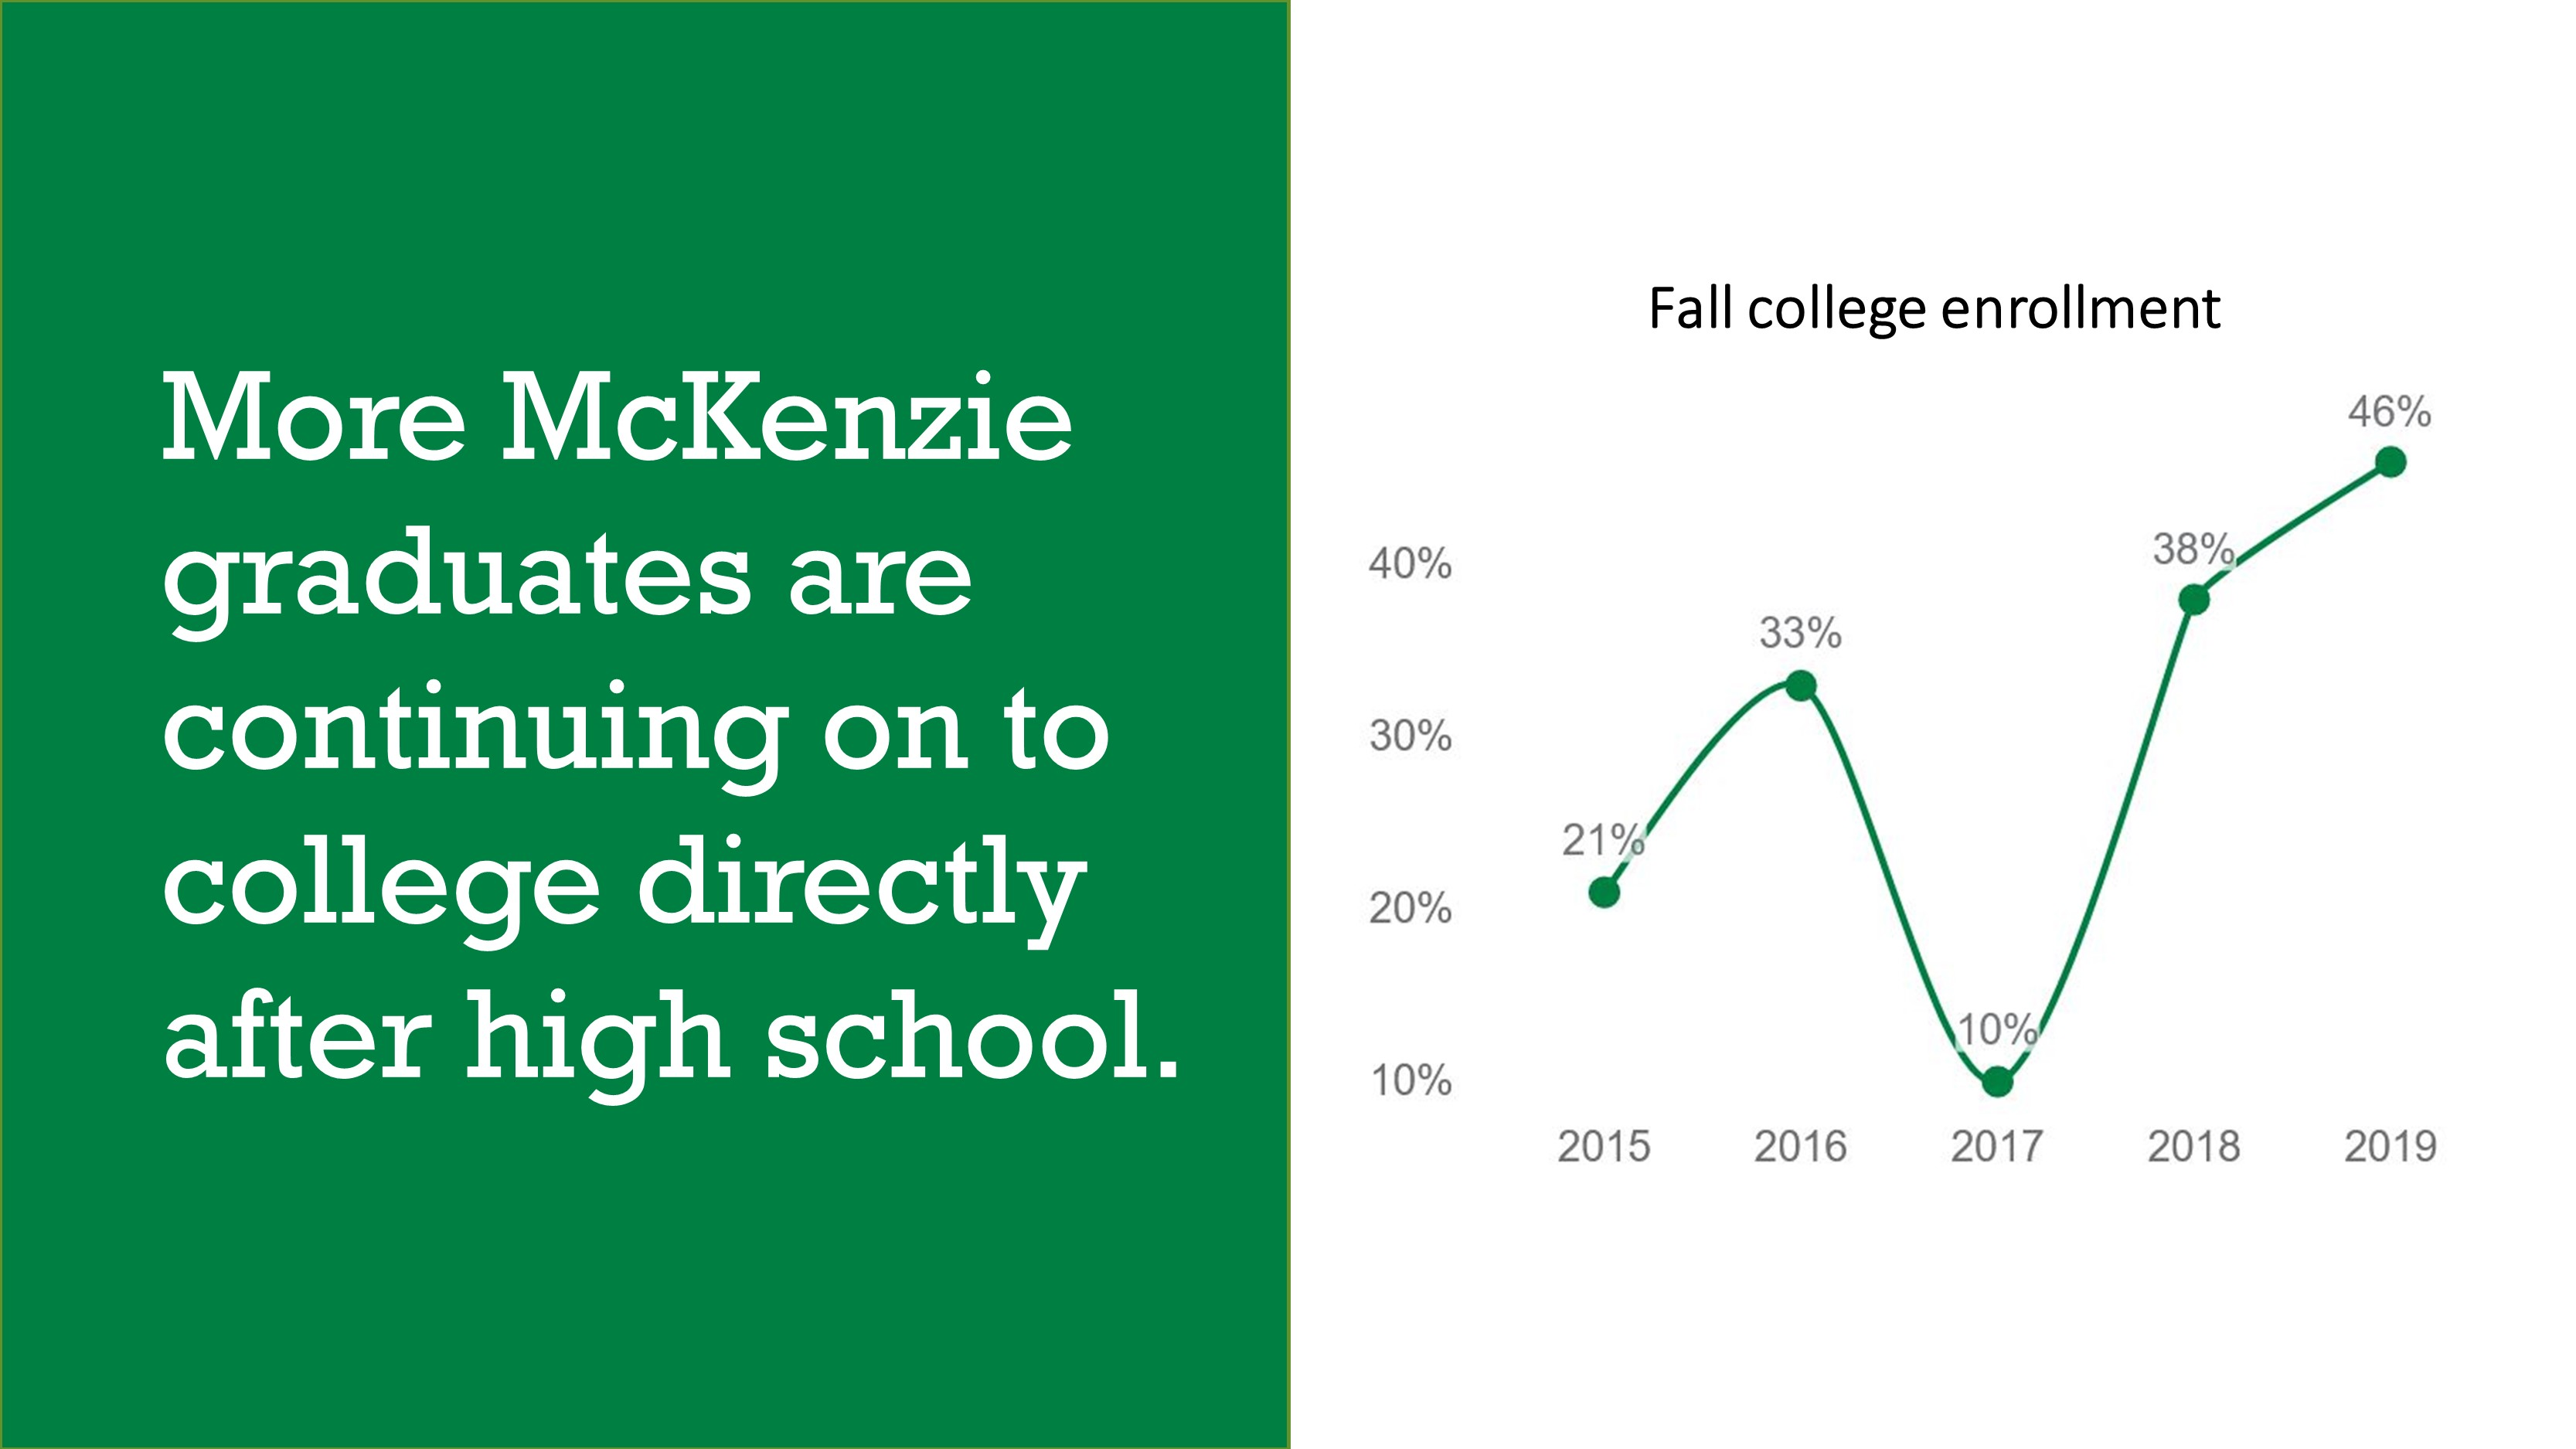 Graph showing increase in college enrollment